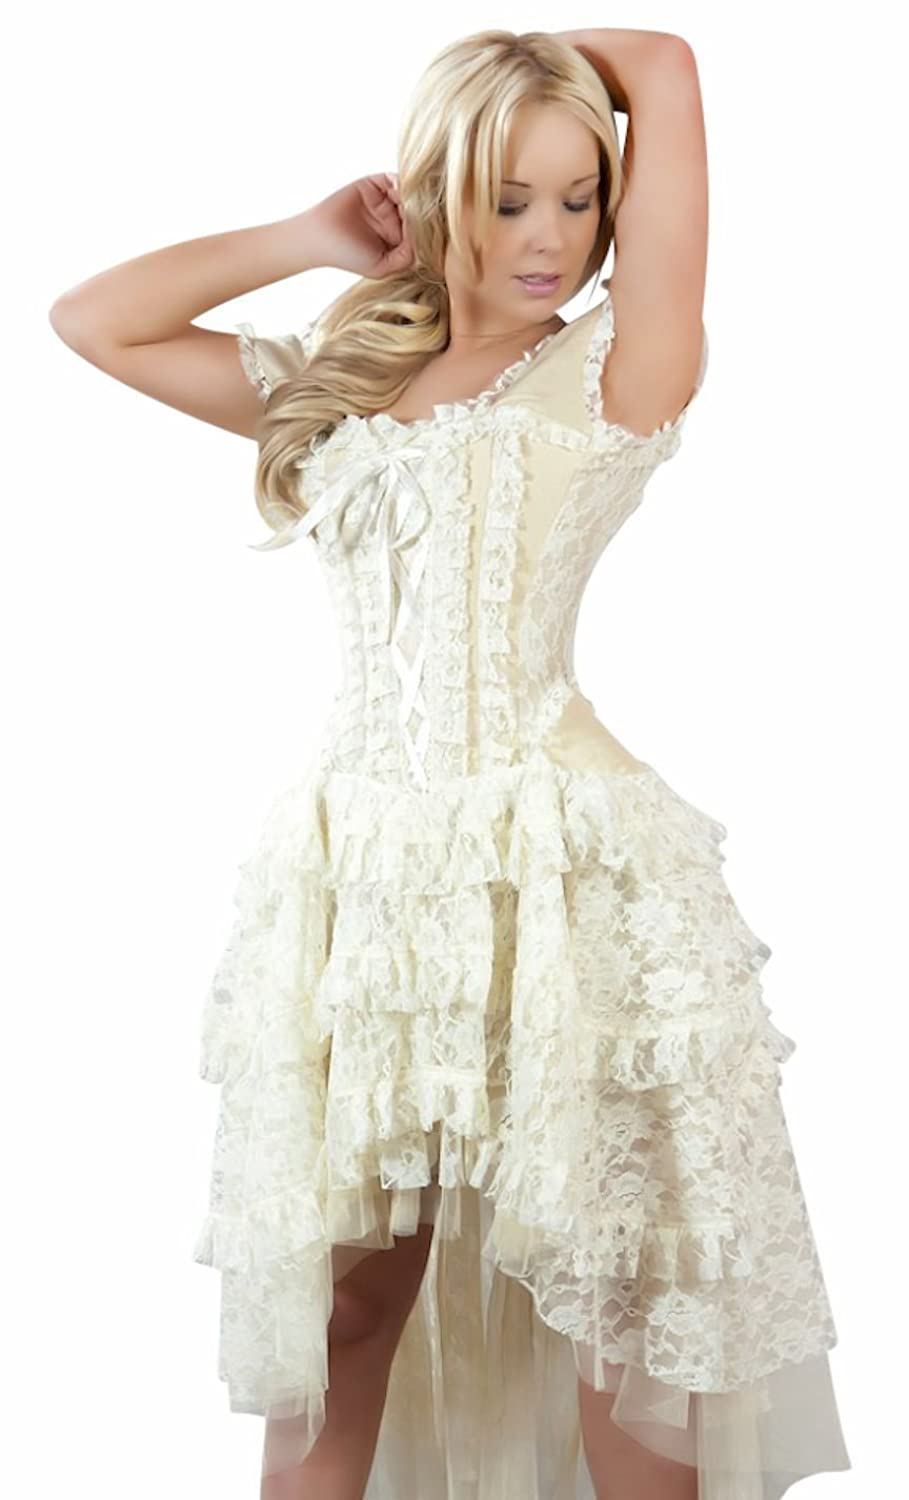 Plus Size Vintage Dresses, Plus Size Retro Dresses Steampunk Corset Dress $139.99 AT vintagedancer.com